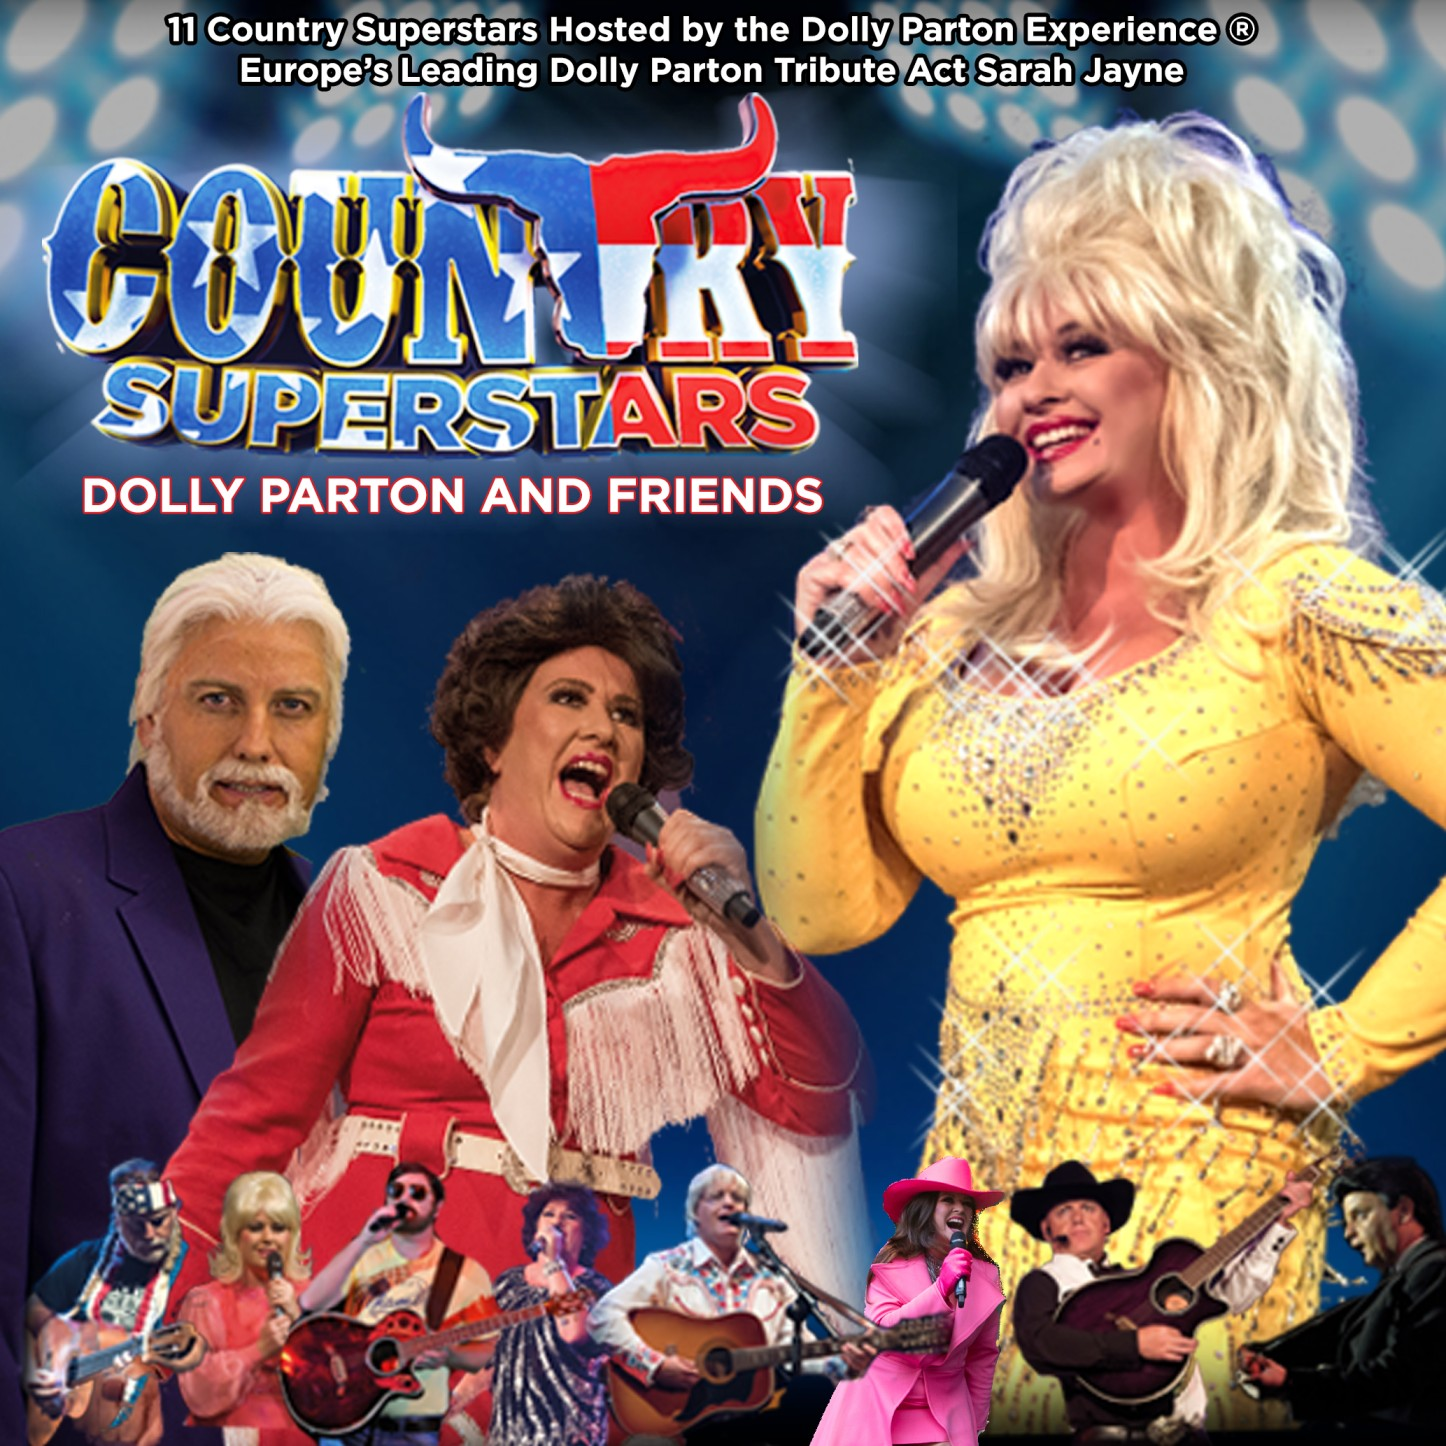 Country Superstars - Dolly Parton and Friends